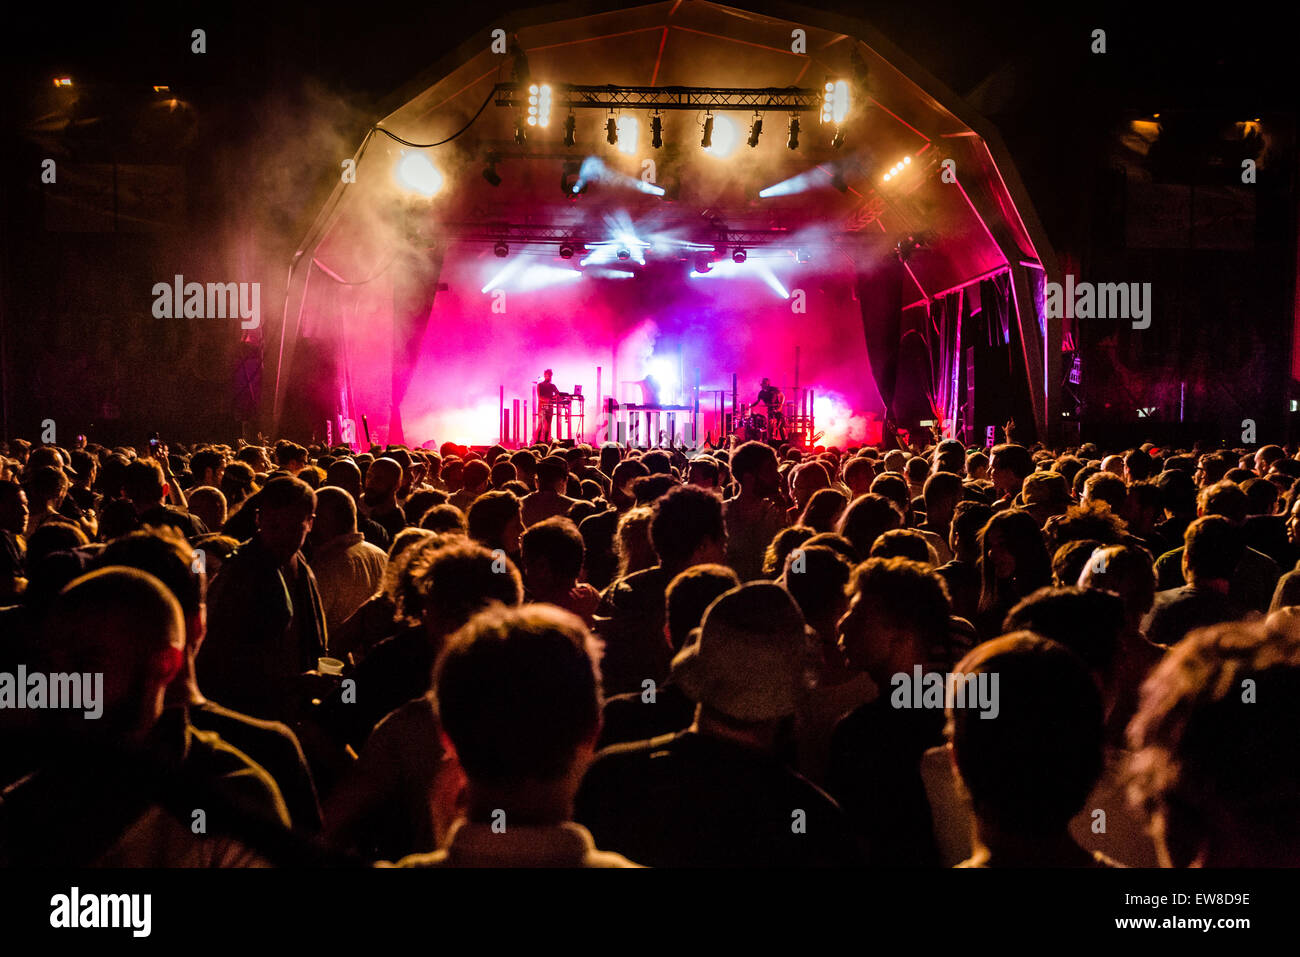 Barcelona, Catalonia, Spain. 20th June, 2015. Festival goers move to the music of 'Hudson Mohawke' during - Stock Image